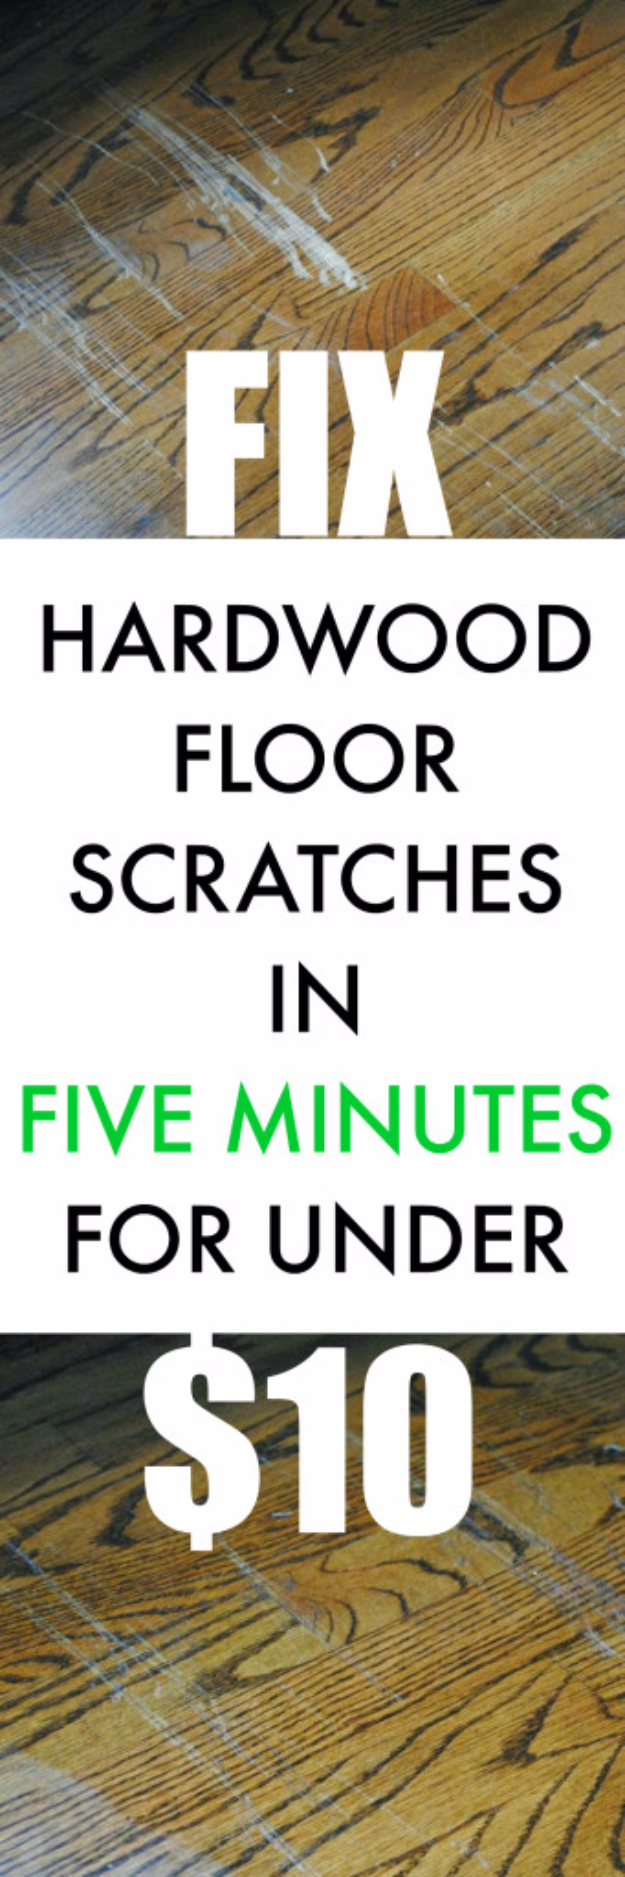 DIY Home Improvement Ideas- Fix Scratched Hardwood Floors In About 5 Minutes - Home Repair Ideas, Home Repairs On A Budget, Home Repair Tips, Living Room, Bedroom, Kitchen Repair, Home Improvement, Quick And Easy Home Tips #diy #homeimprovement #diyhome #homerepair